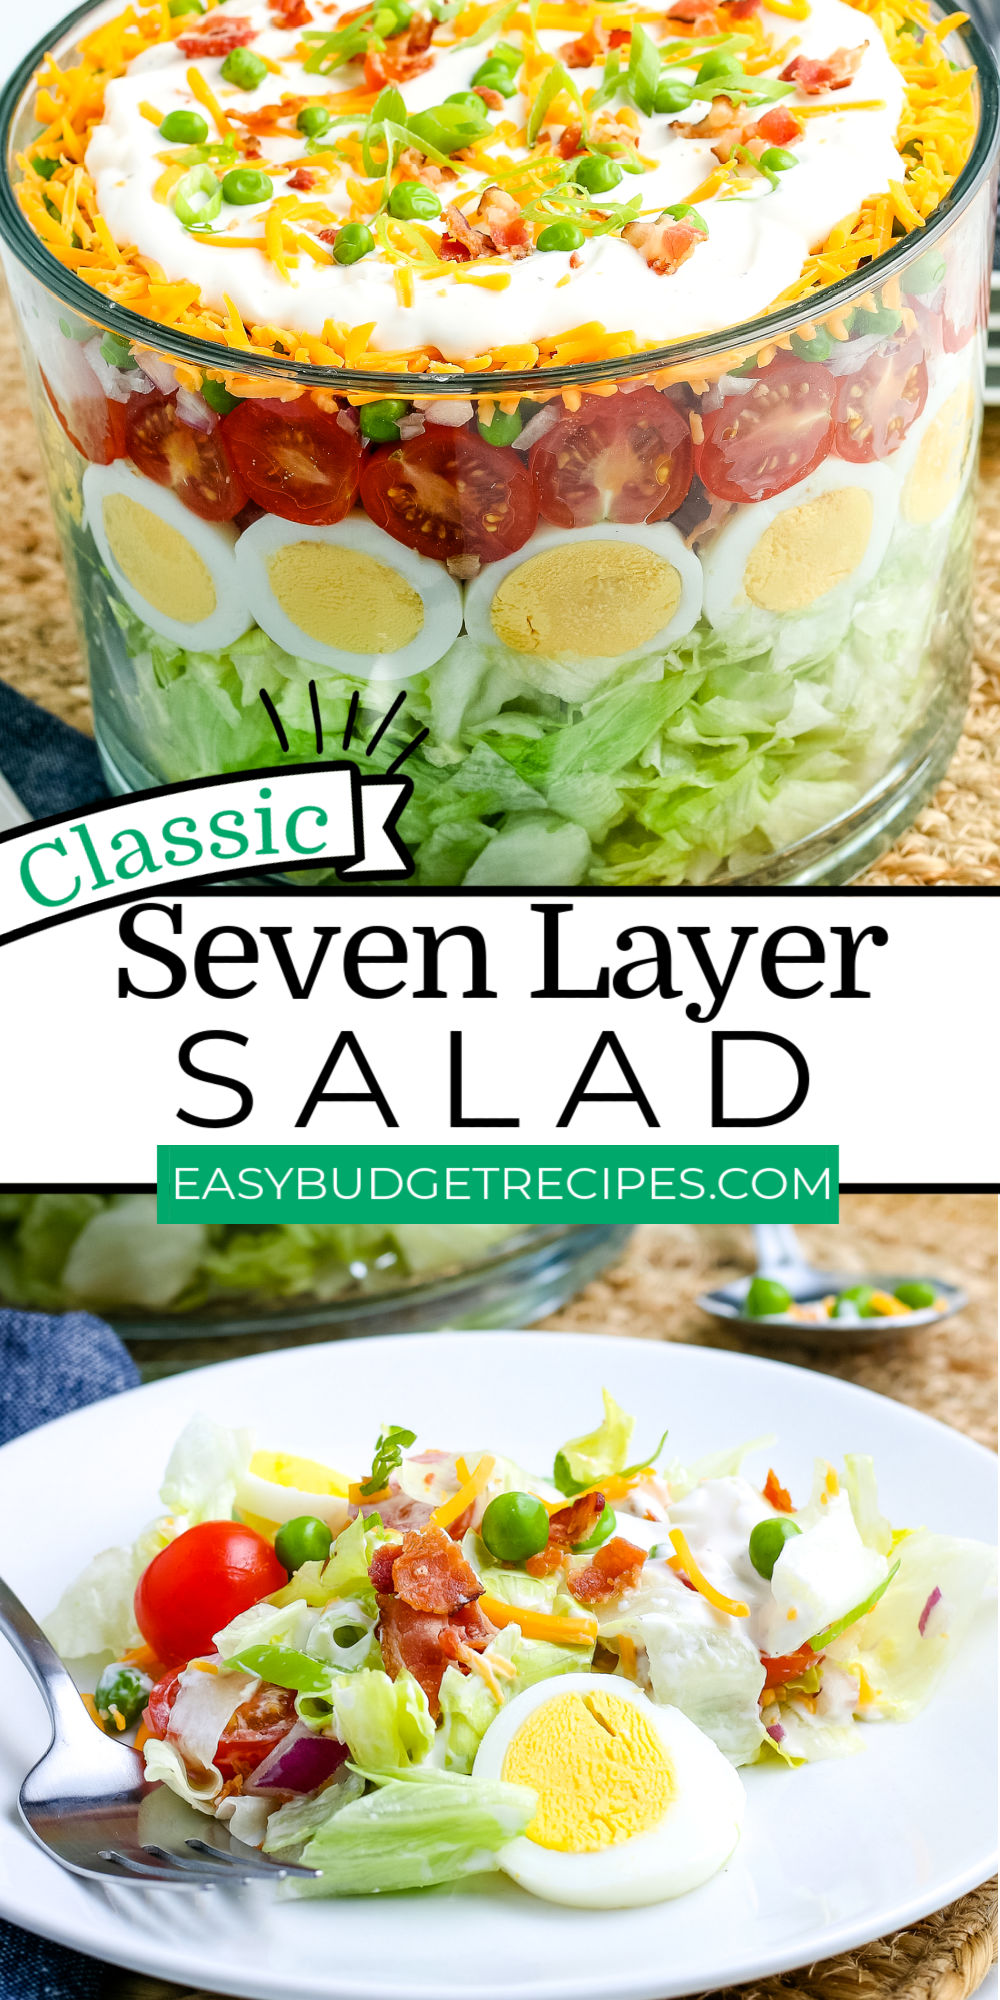 Seven Layer Salad is a delicious, crunchy, bright salad recipe that's great for potlucks, BBQs, and even holidays like Thanksgiving.  via @easybudgetrecipes